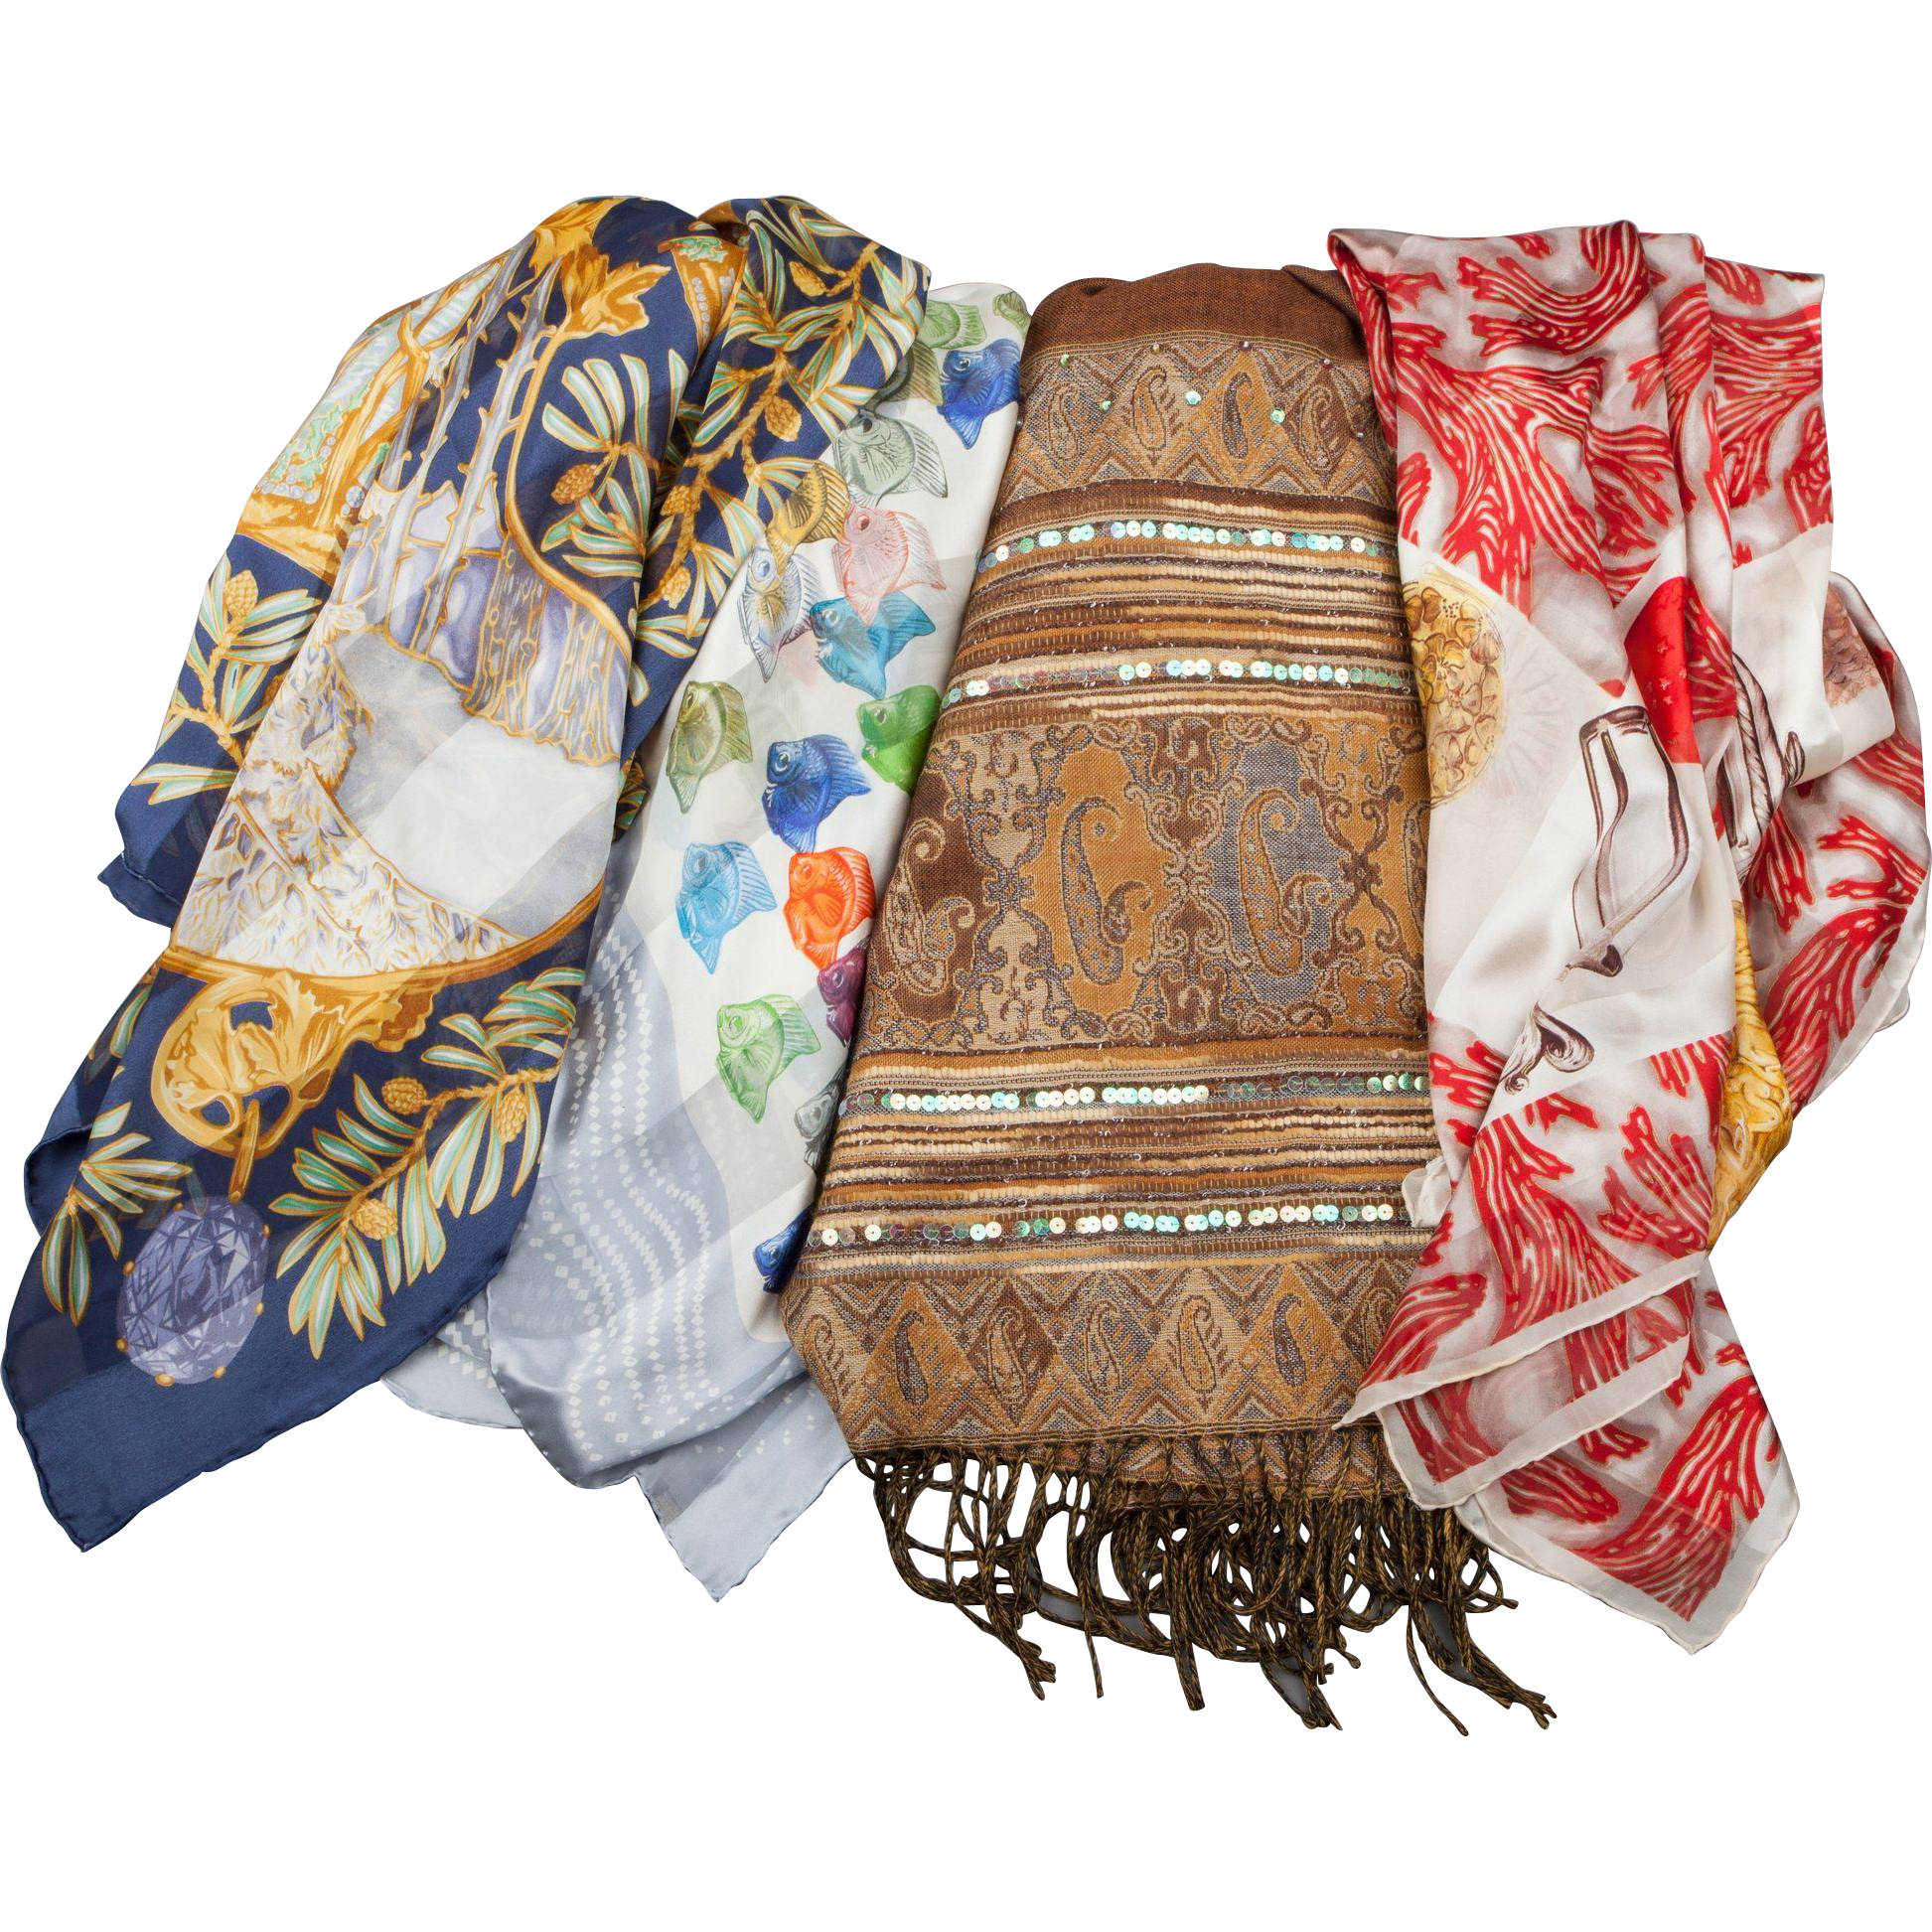 Three LALIQUE Silk Scarves and an R. LALIQUE Shawl